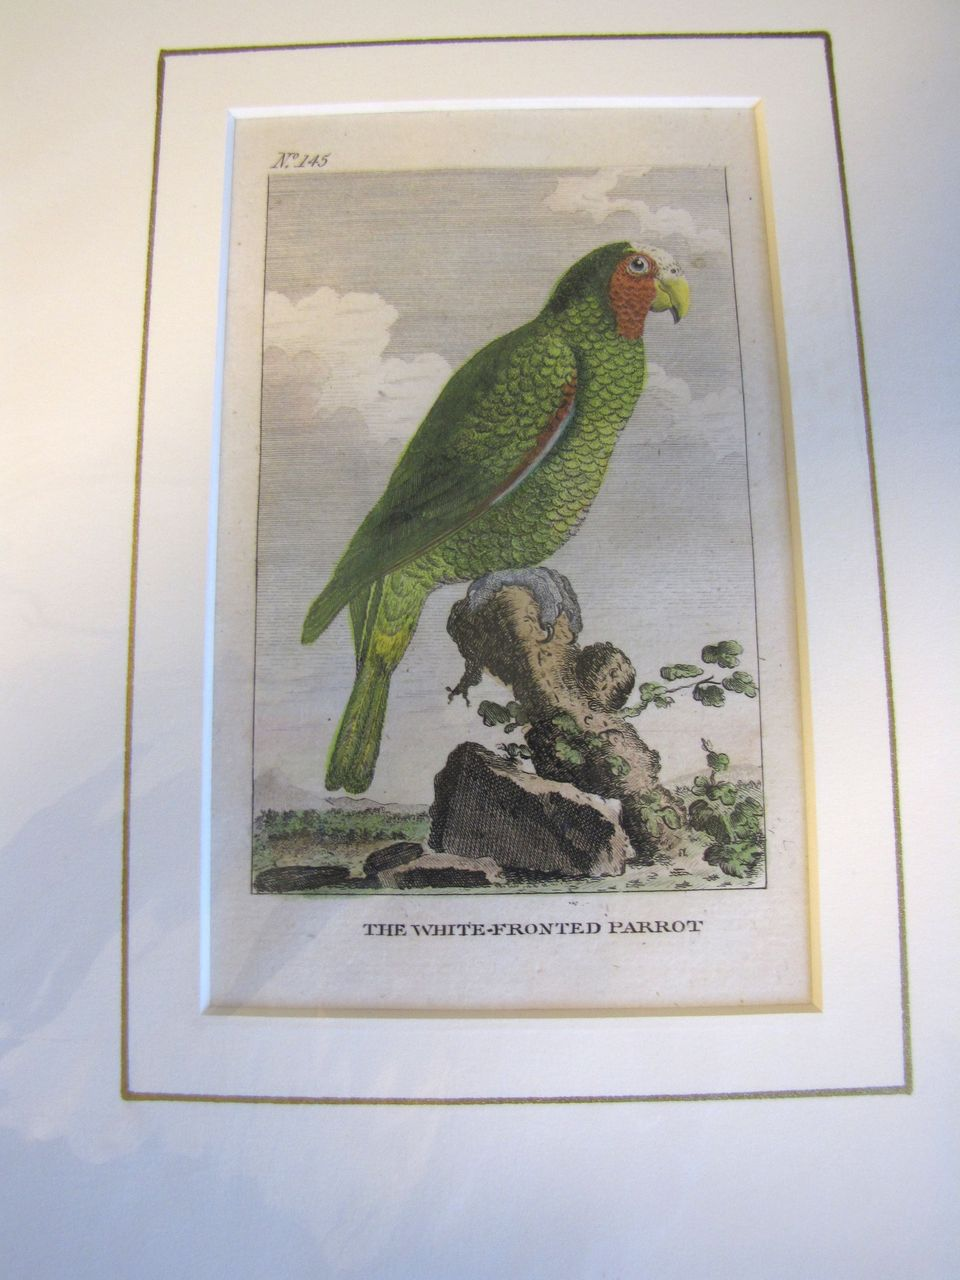 Detailed Hand-Colored  Copper-Plate Engraving, The White-Fronted PARROT, c. 1790